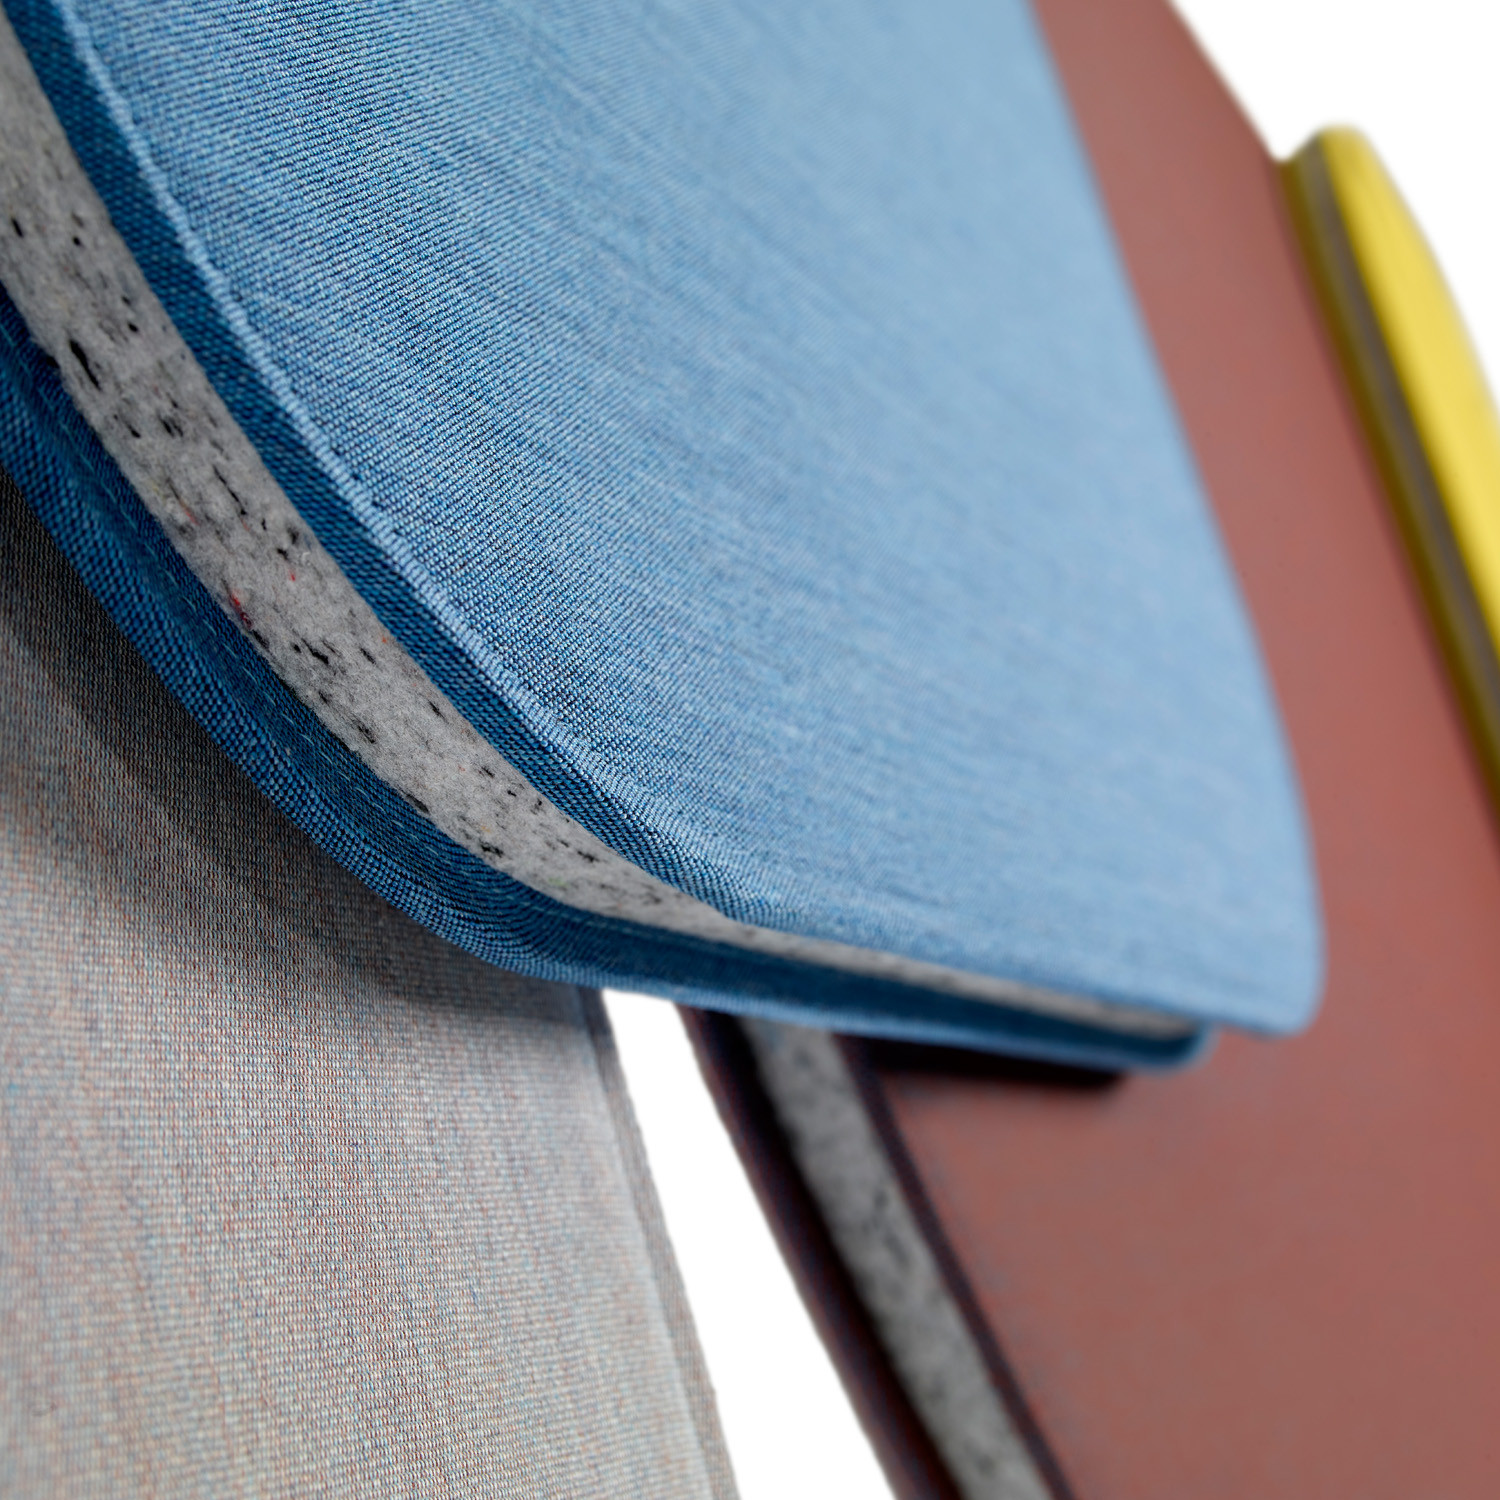 Offecct Notes Sound Absorbers